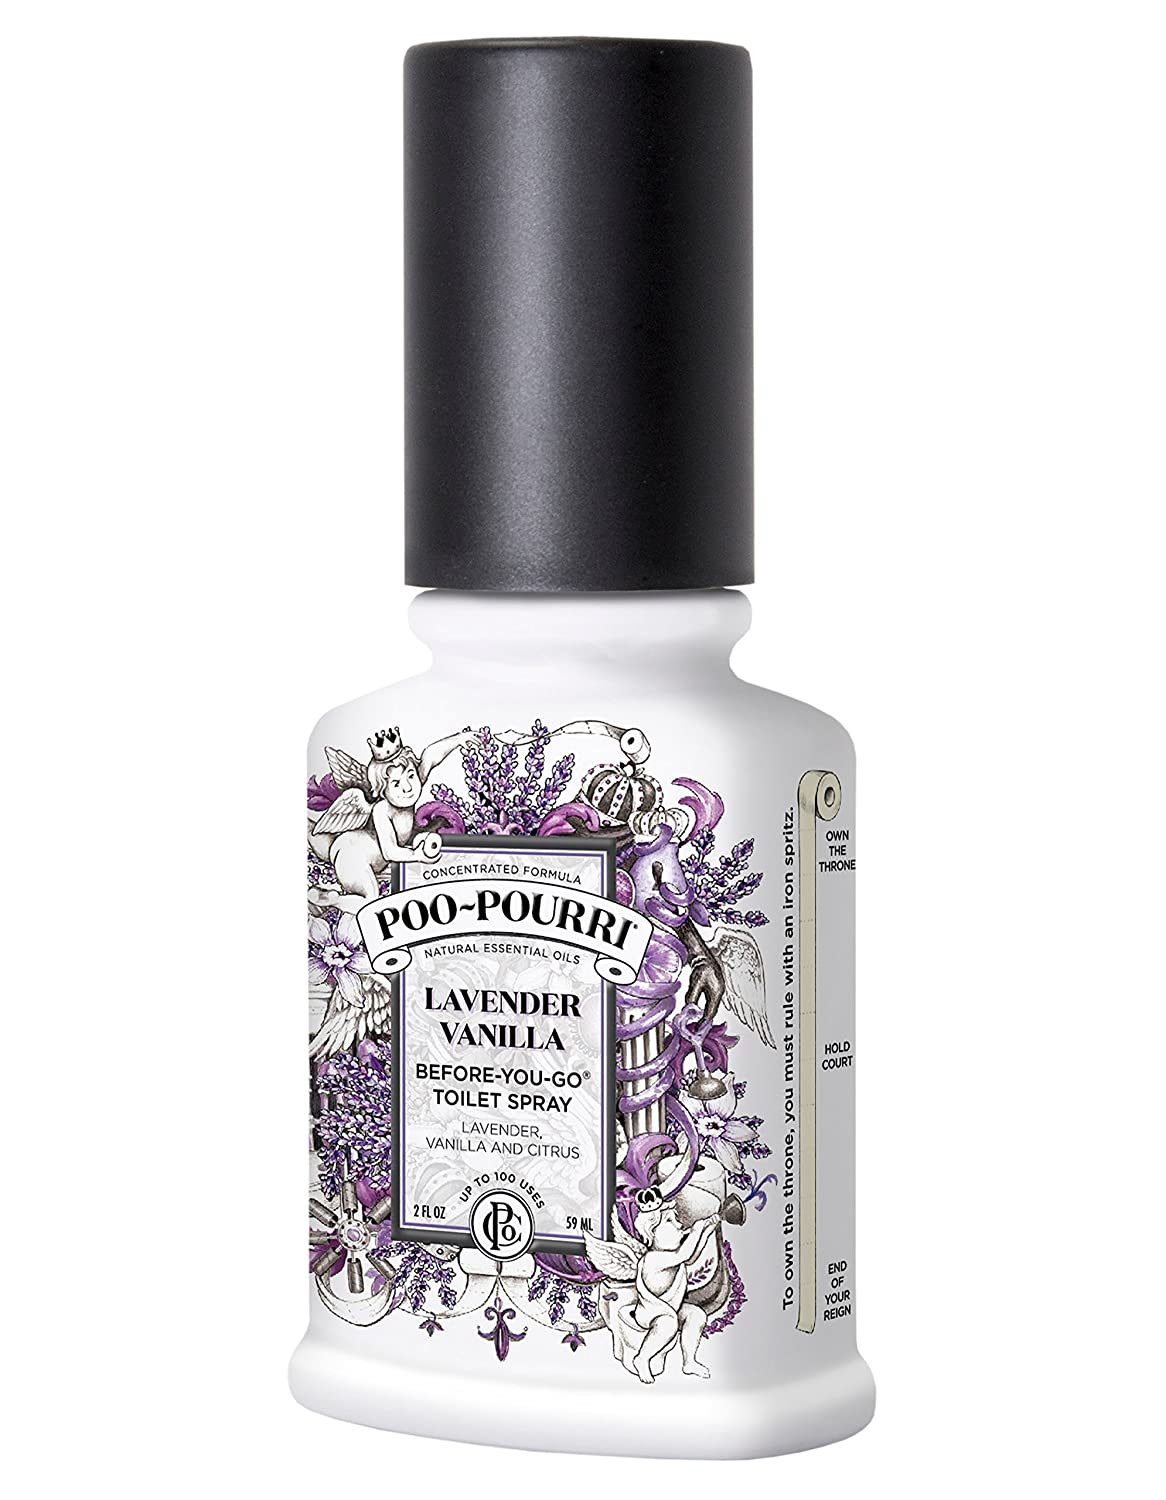 Poo-Pourri Before-You-Go Toilet Spray 2-Ounce Bottle, Lavender Vanilla Scent